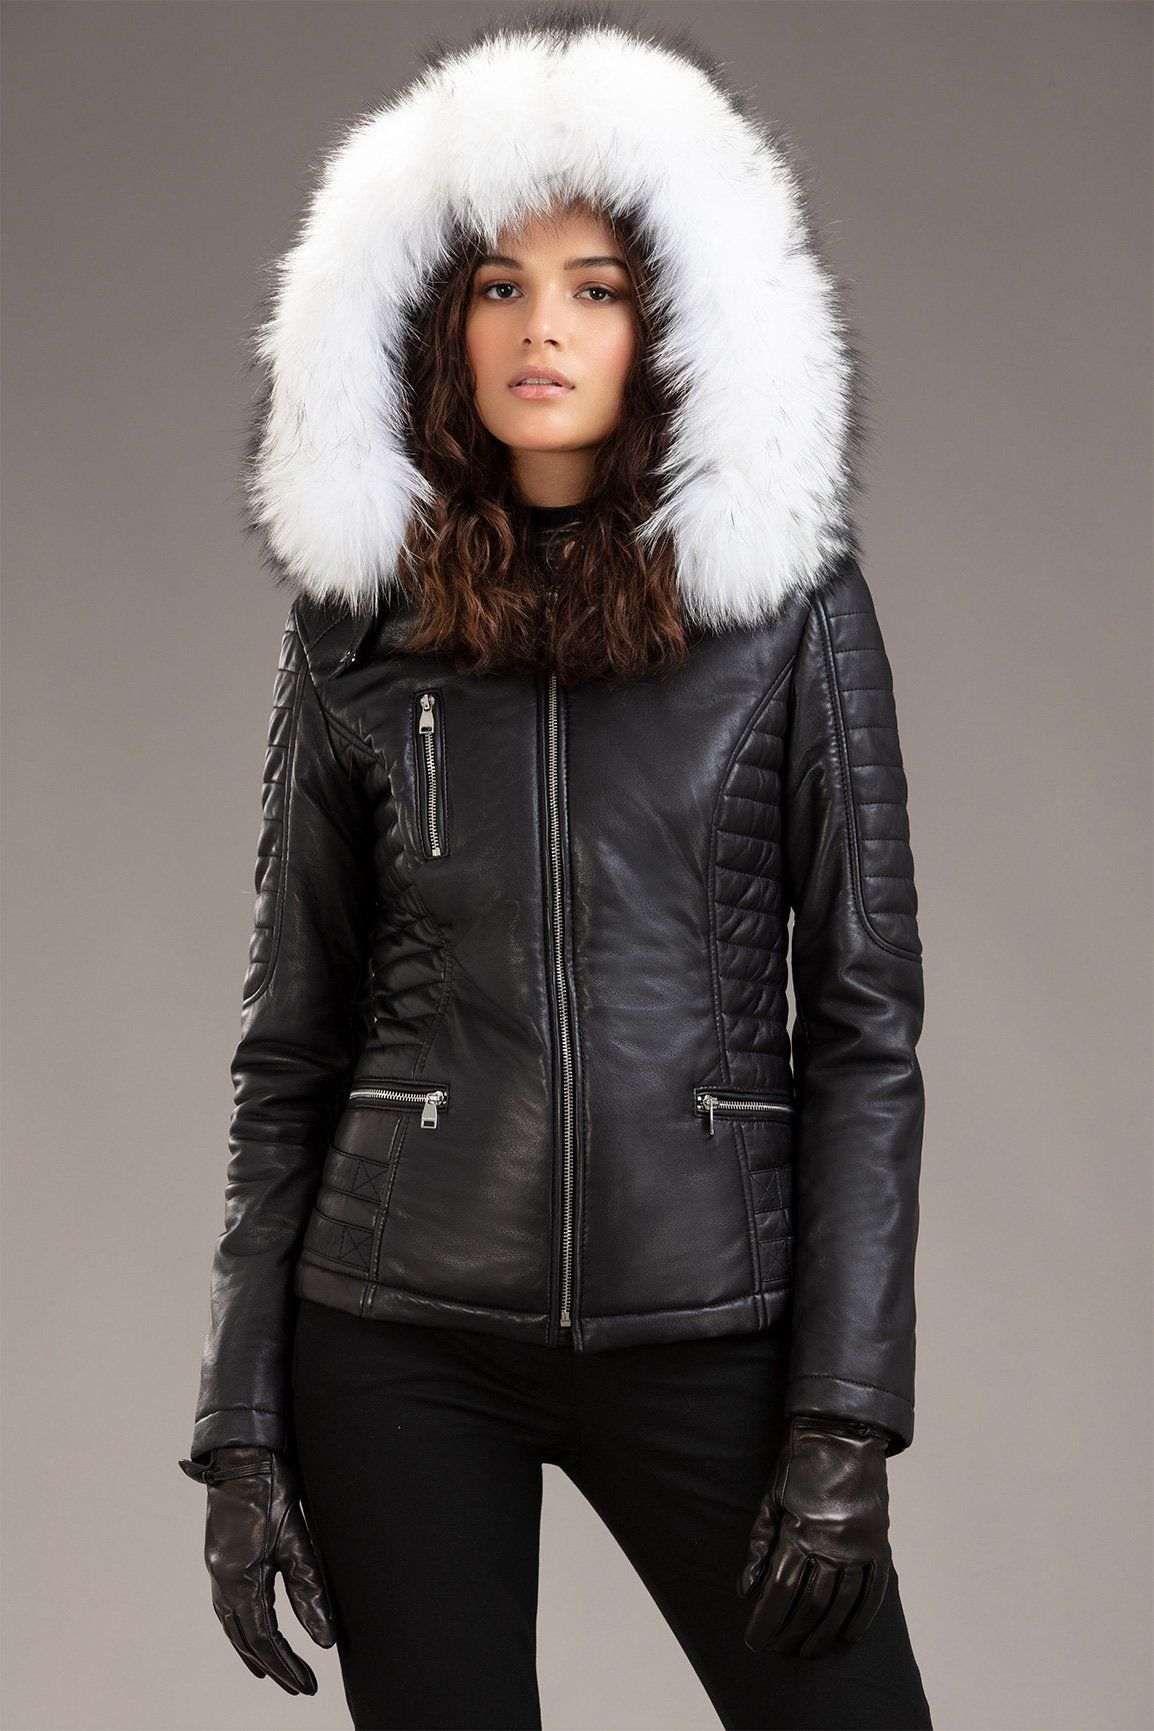 Lisa Womens leather jacket outfit, Leather jacket with